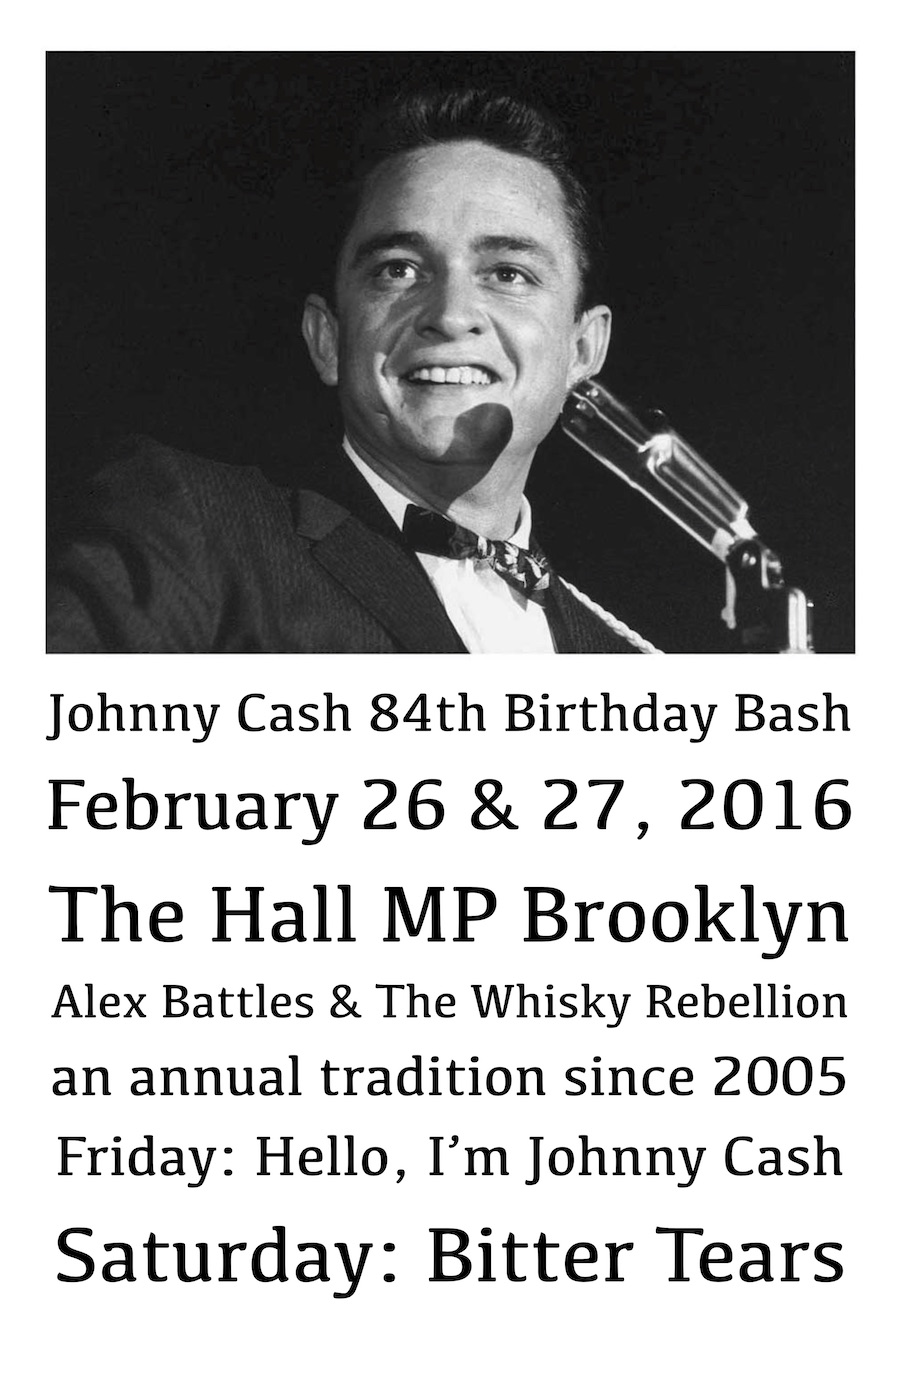 The Johnny Cash 84th Birthday                     Bash at The Hall at MP Brooklyn